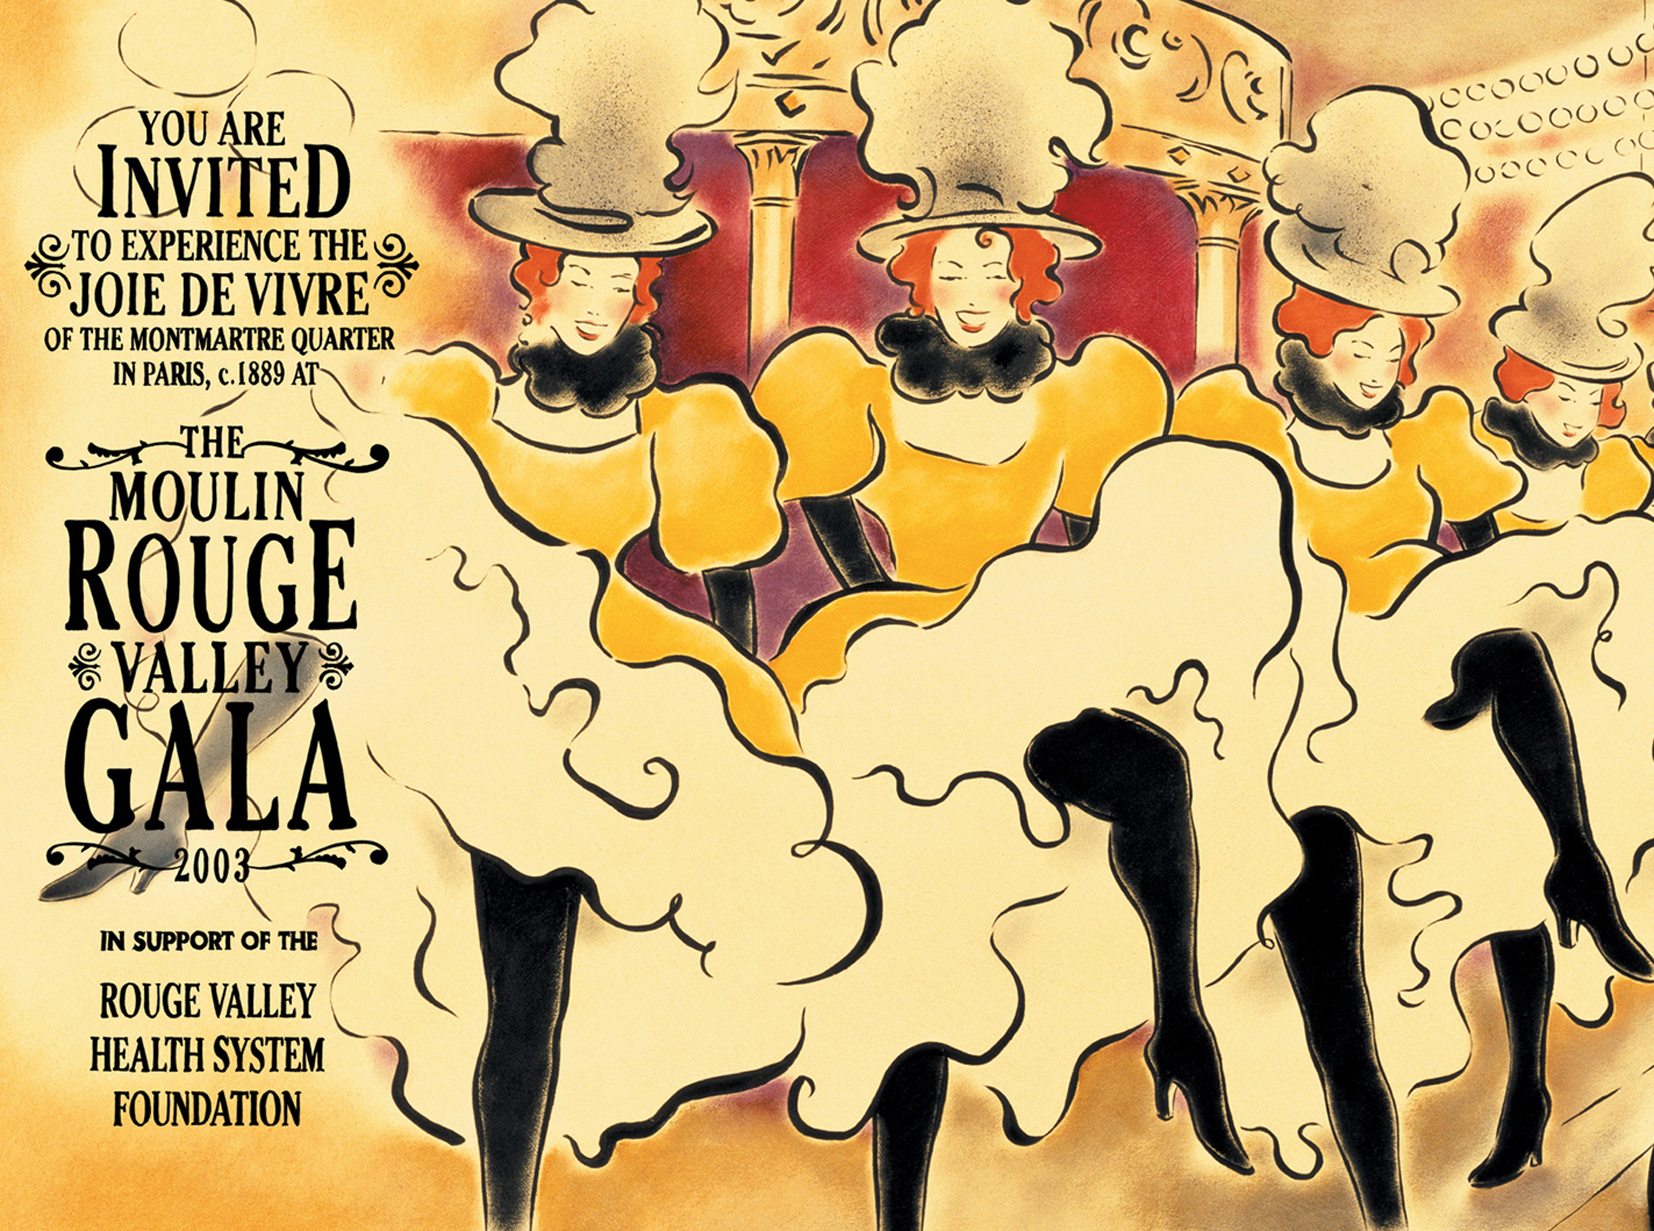 The Moulin Rouge Valley Gala Invite